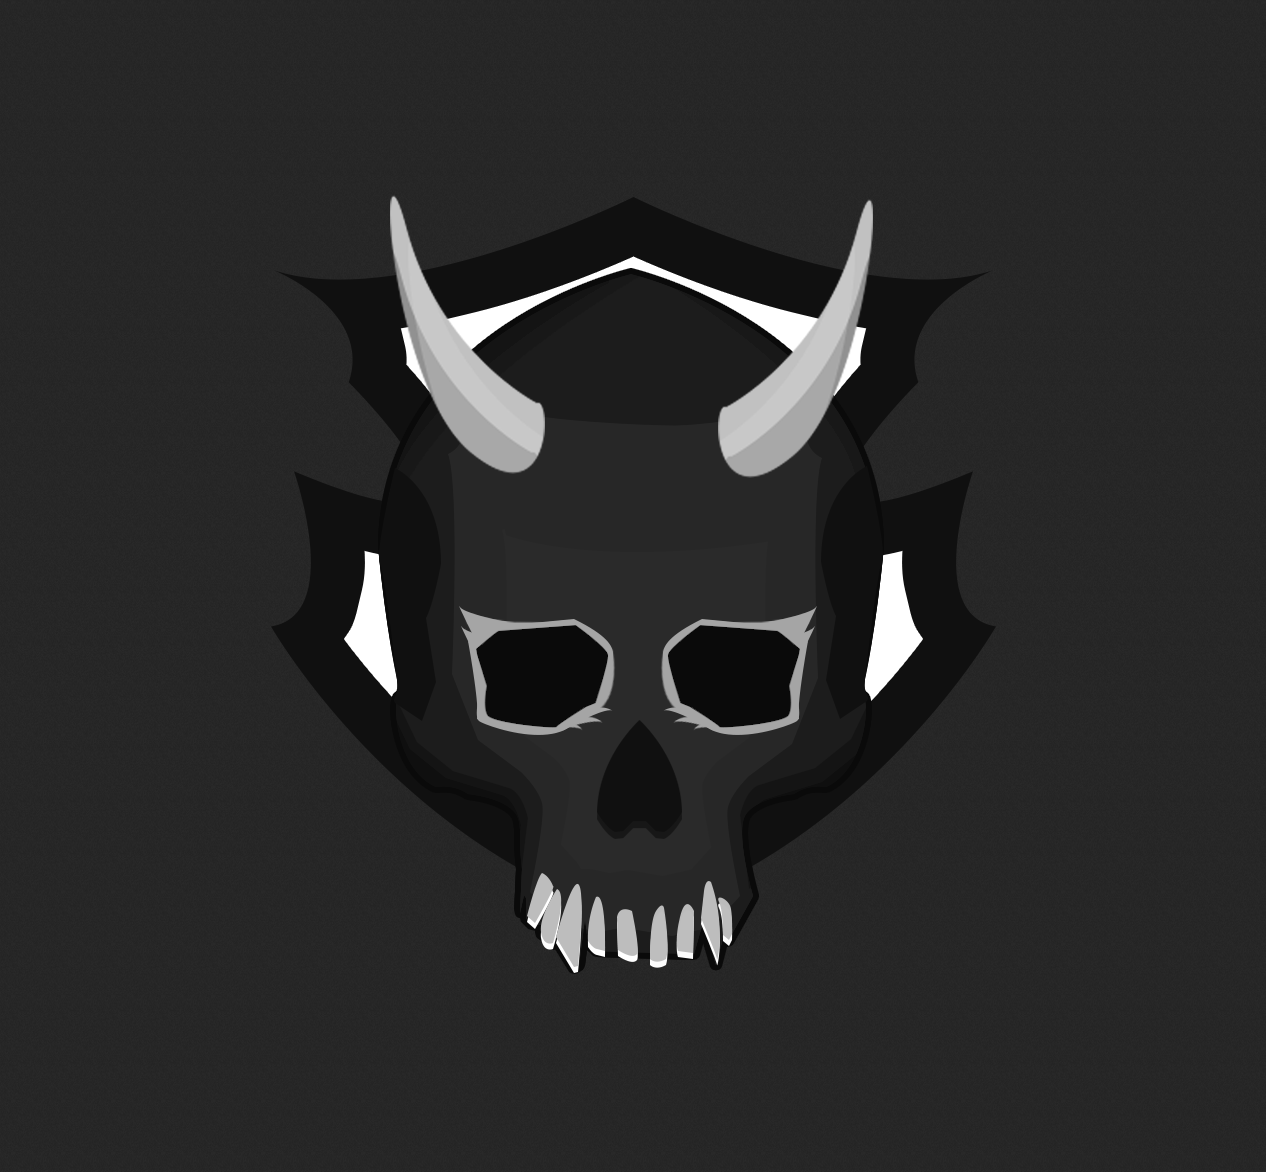 polish devils csgo clan logo by draxu on deviantart